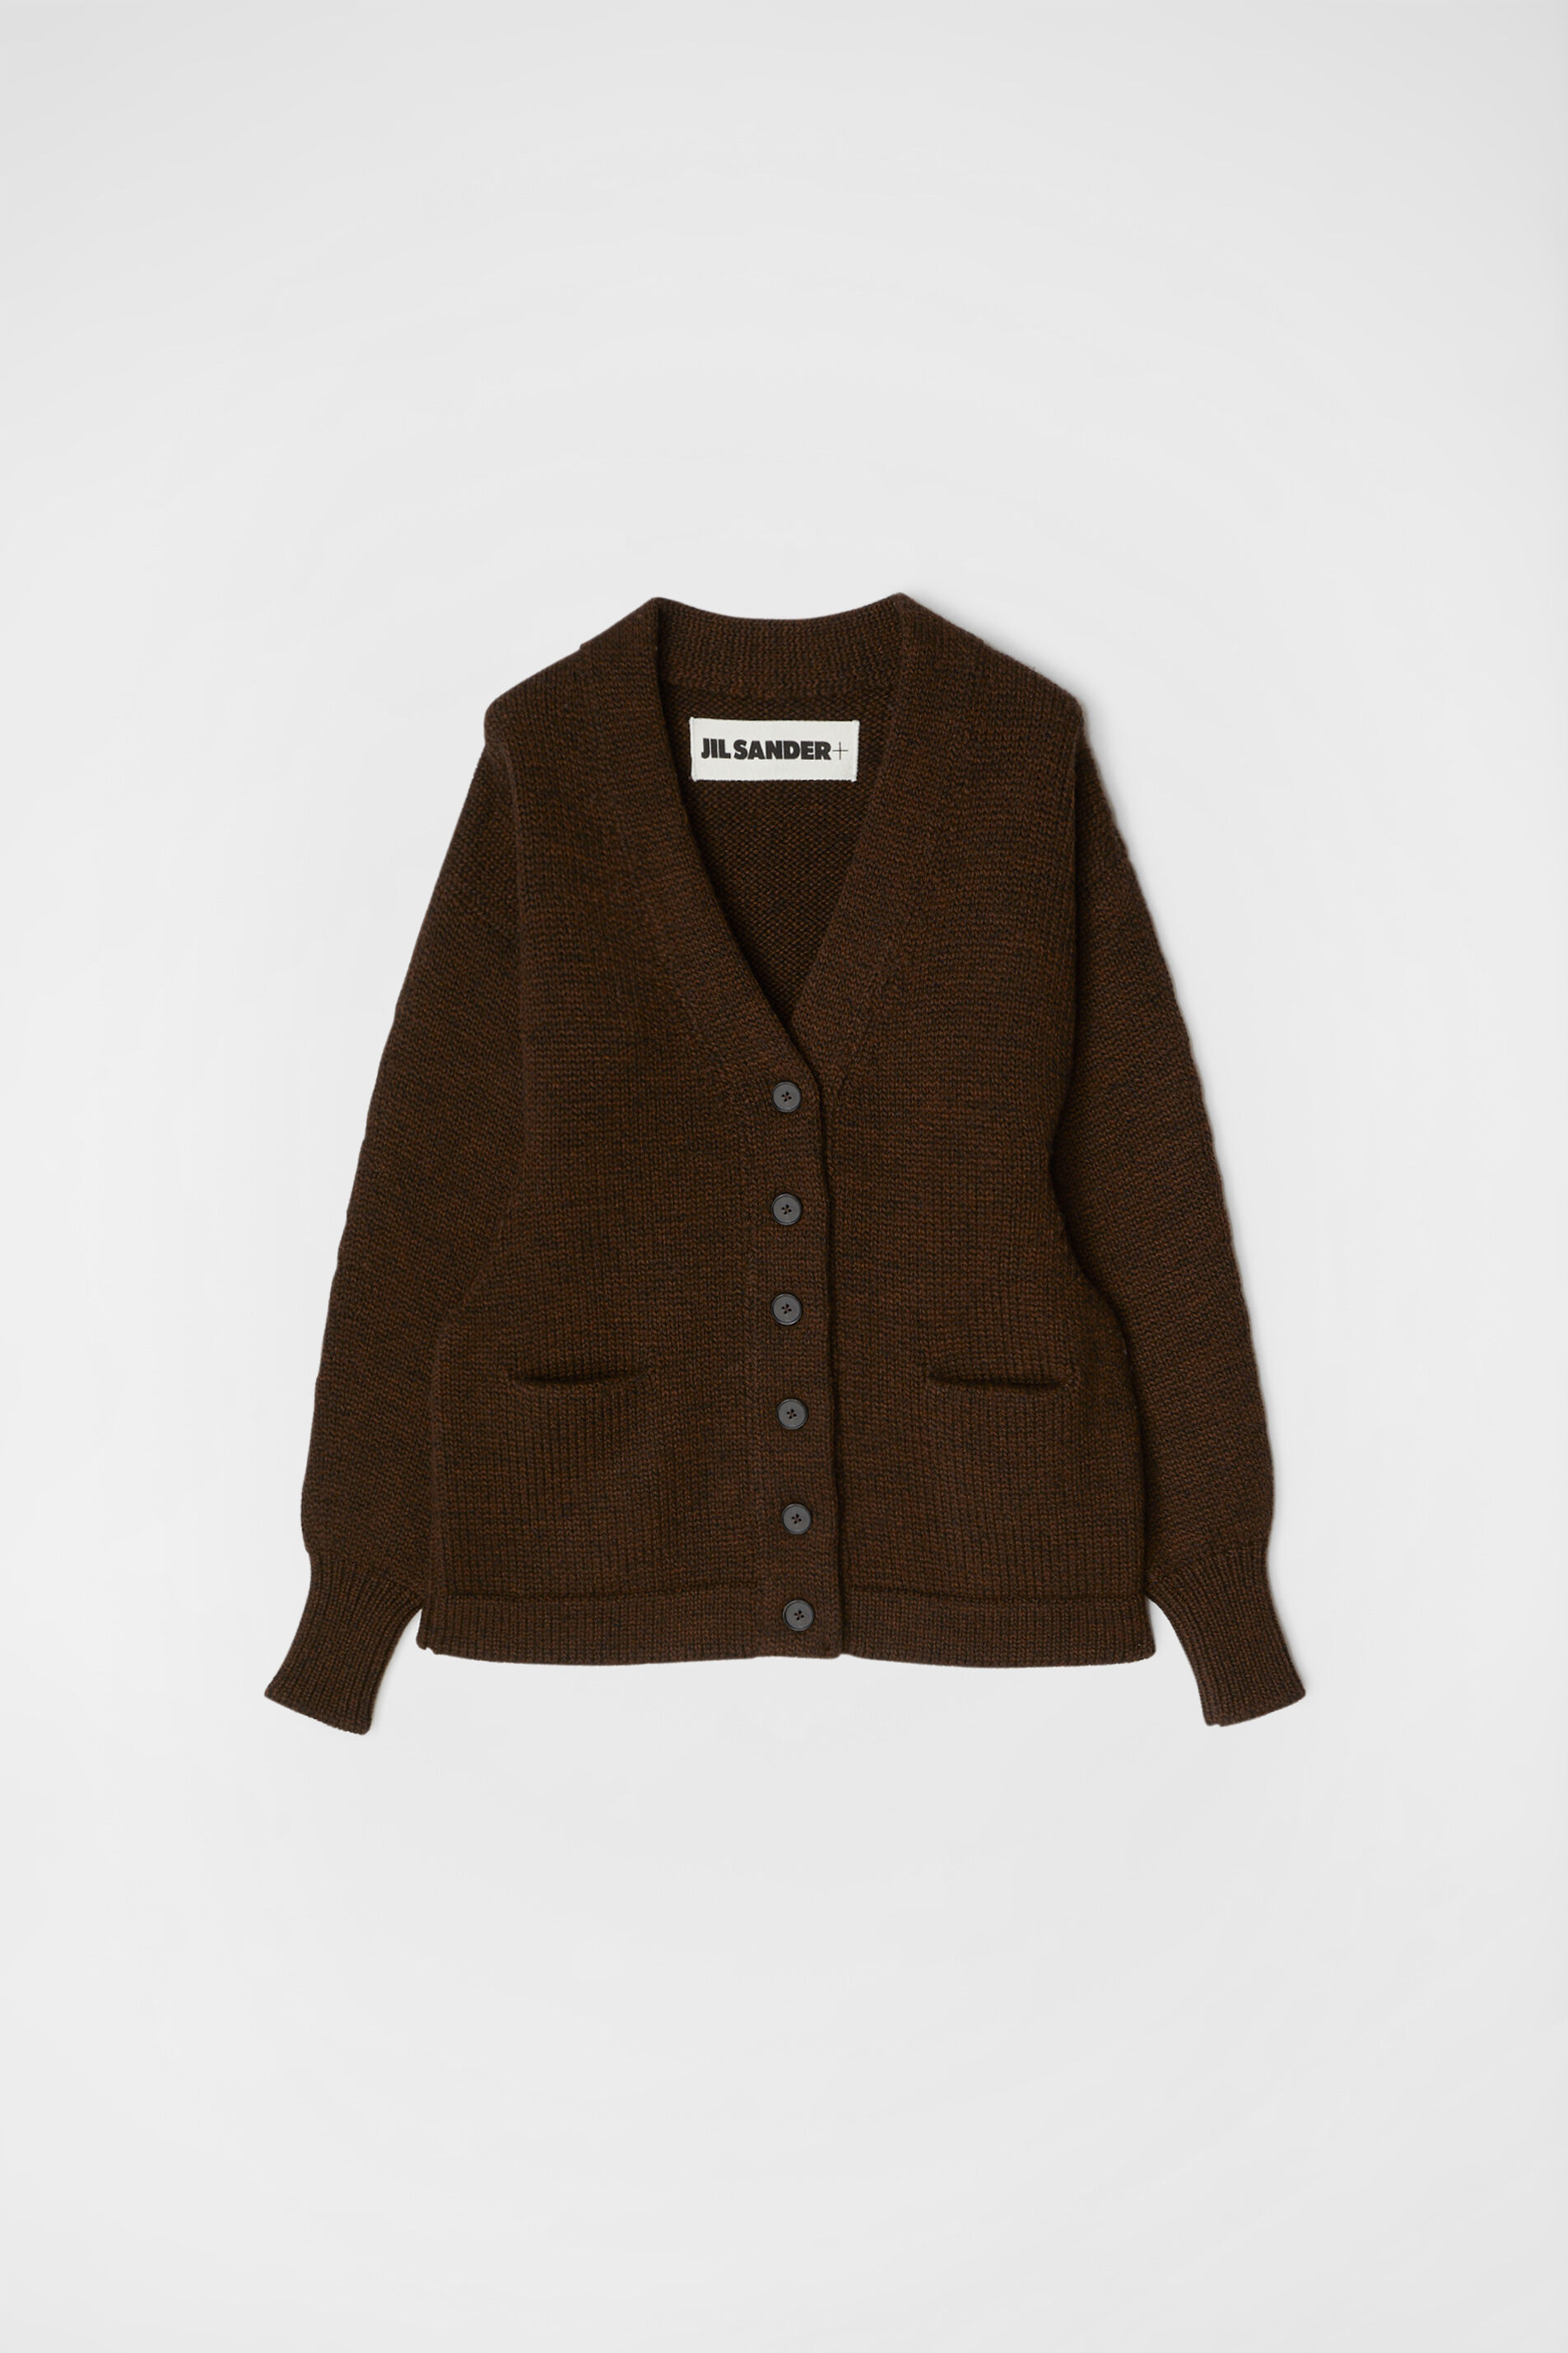 Cardigan, dark brown, large